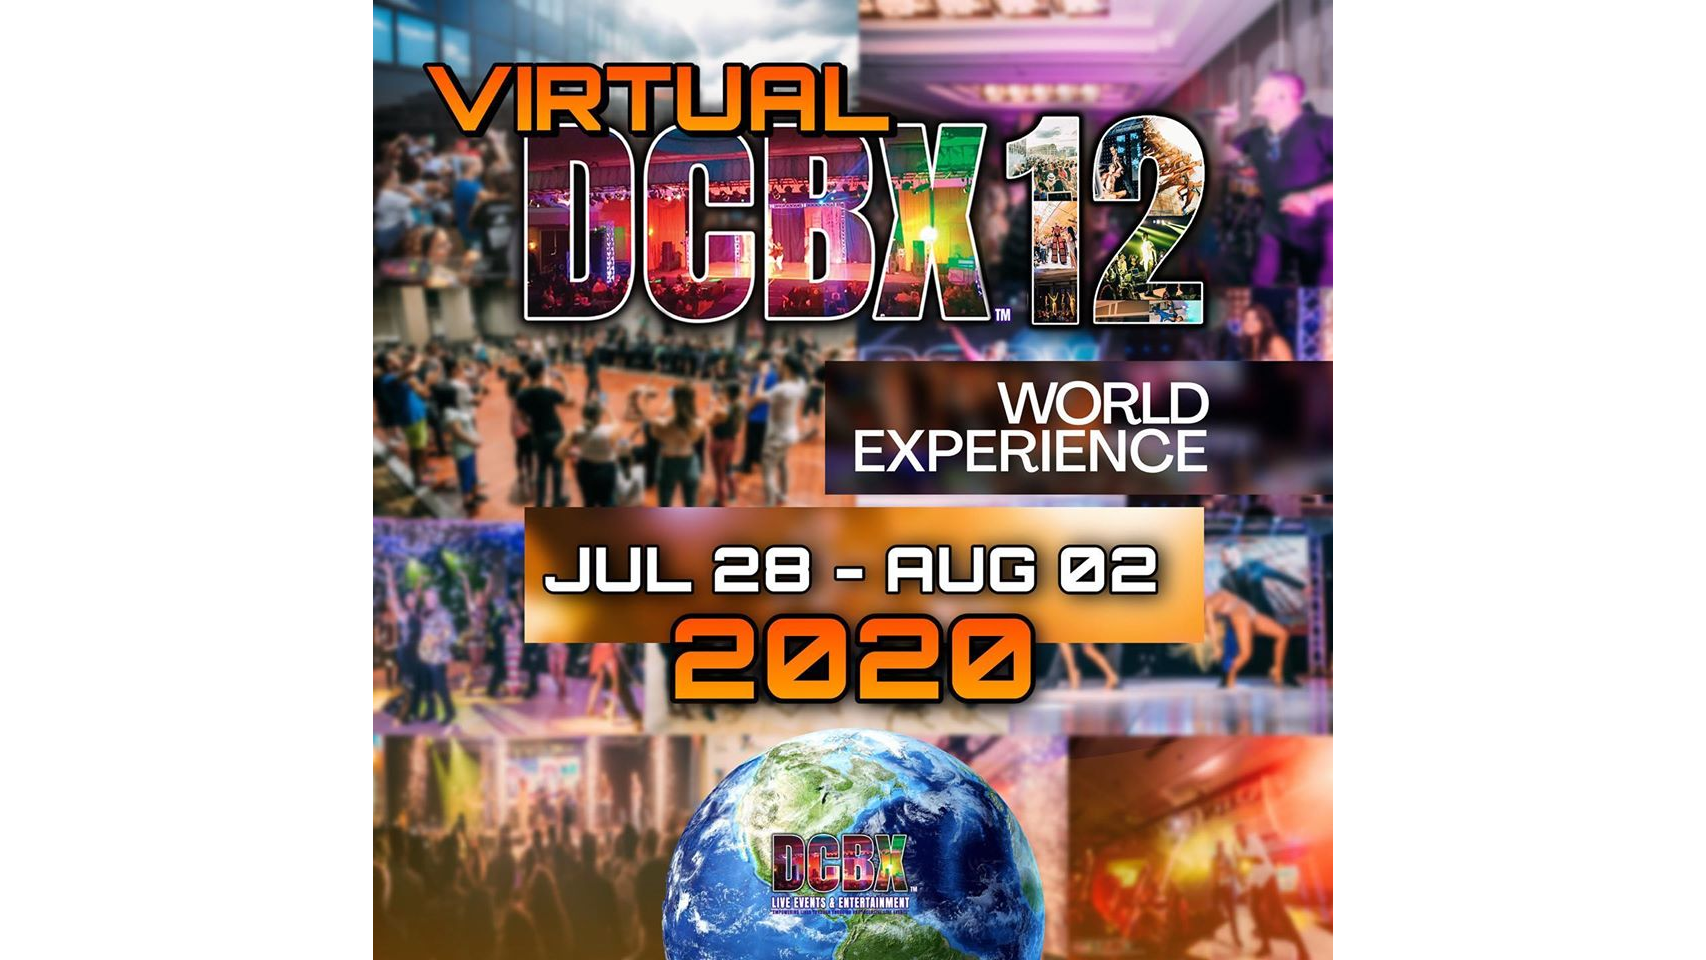 Thumbnail for DCBX Virtual Pay Per View Instant Access on ViewStub